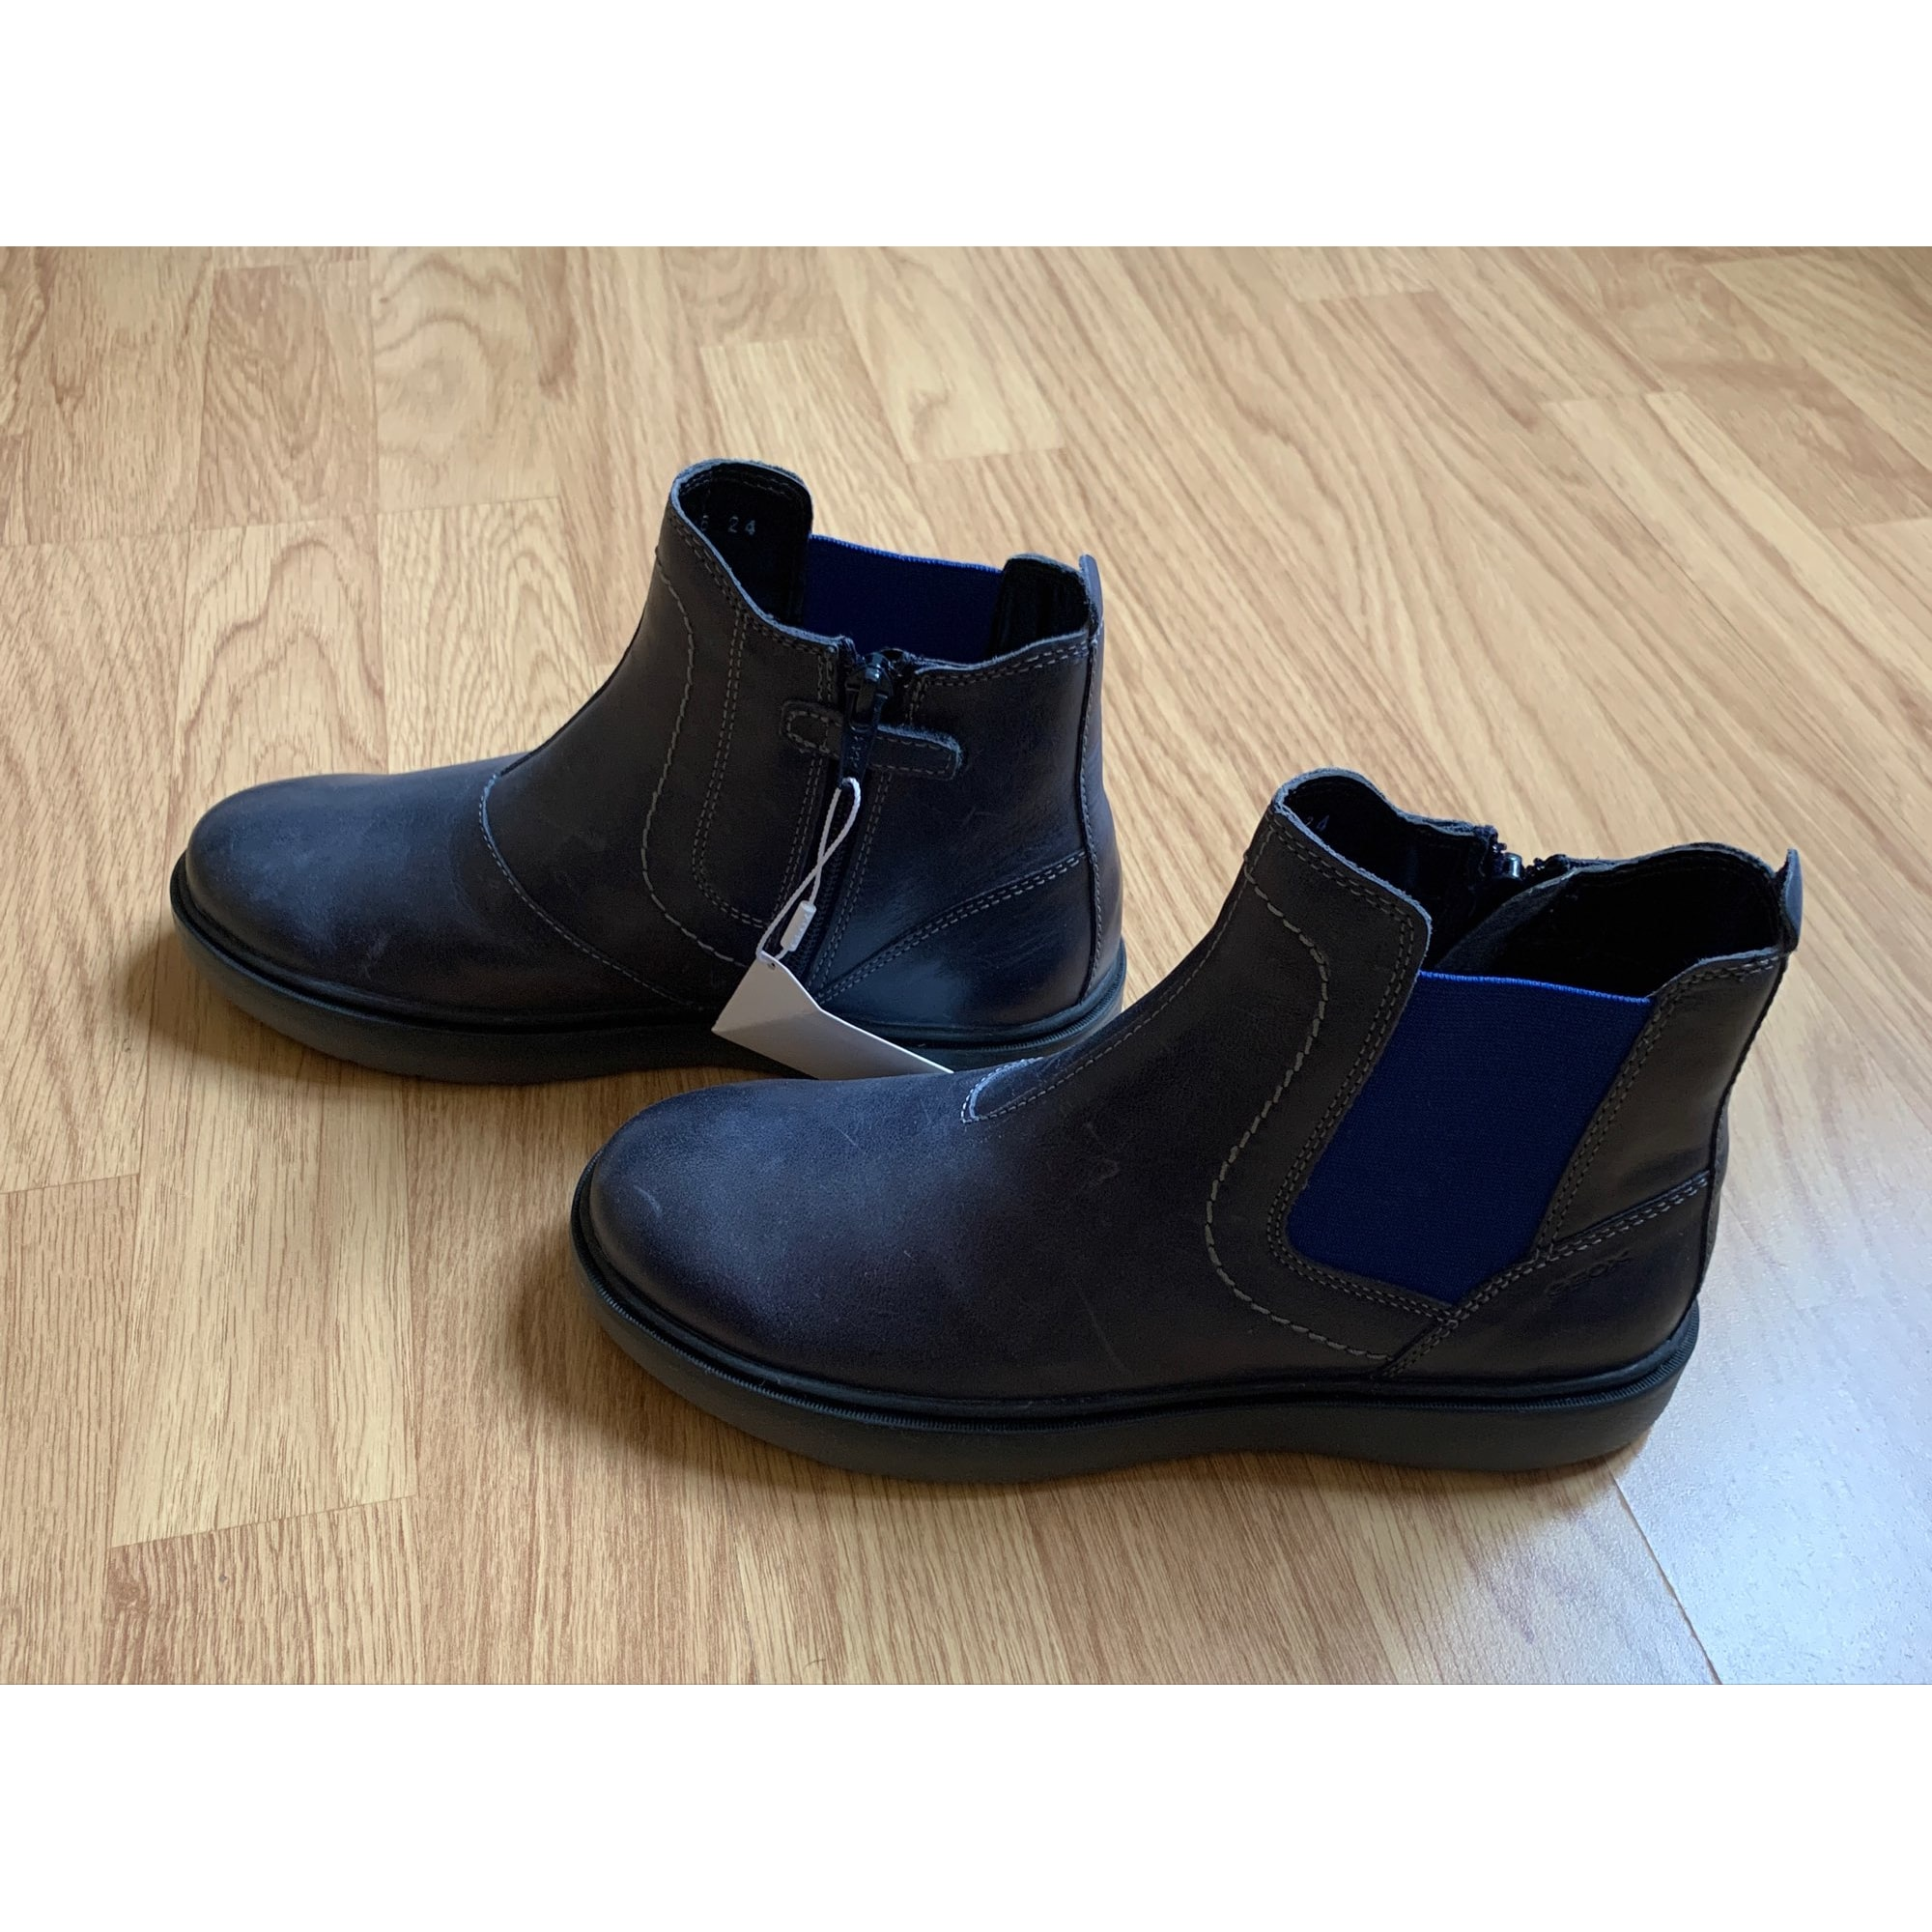 Ankle Boots GEOX Blue, navy, turquoise